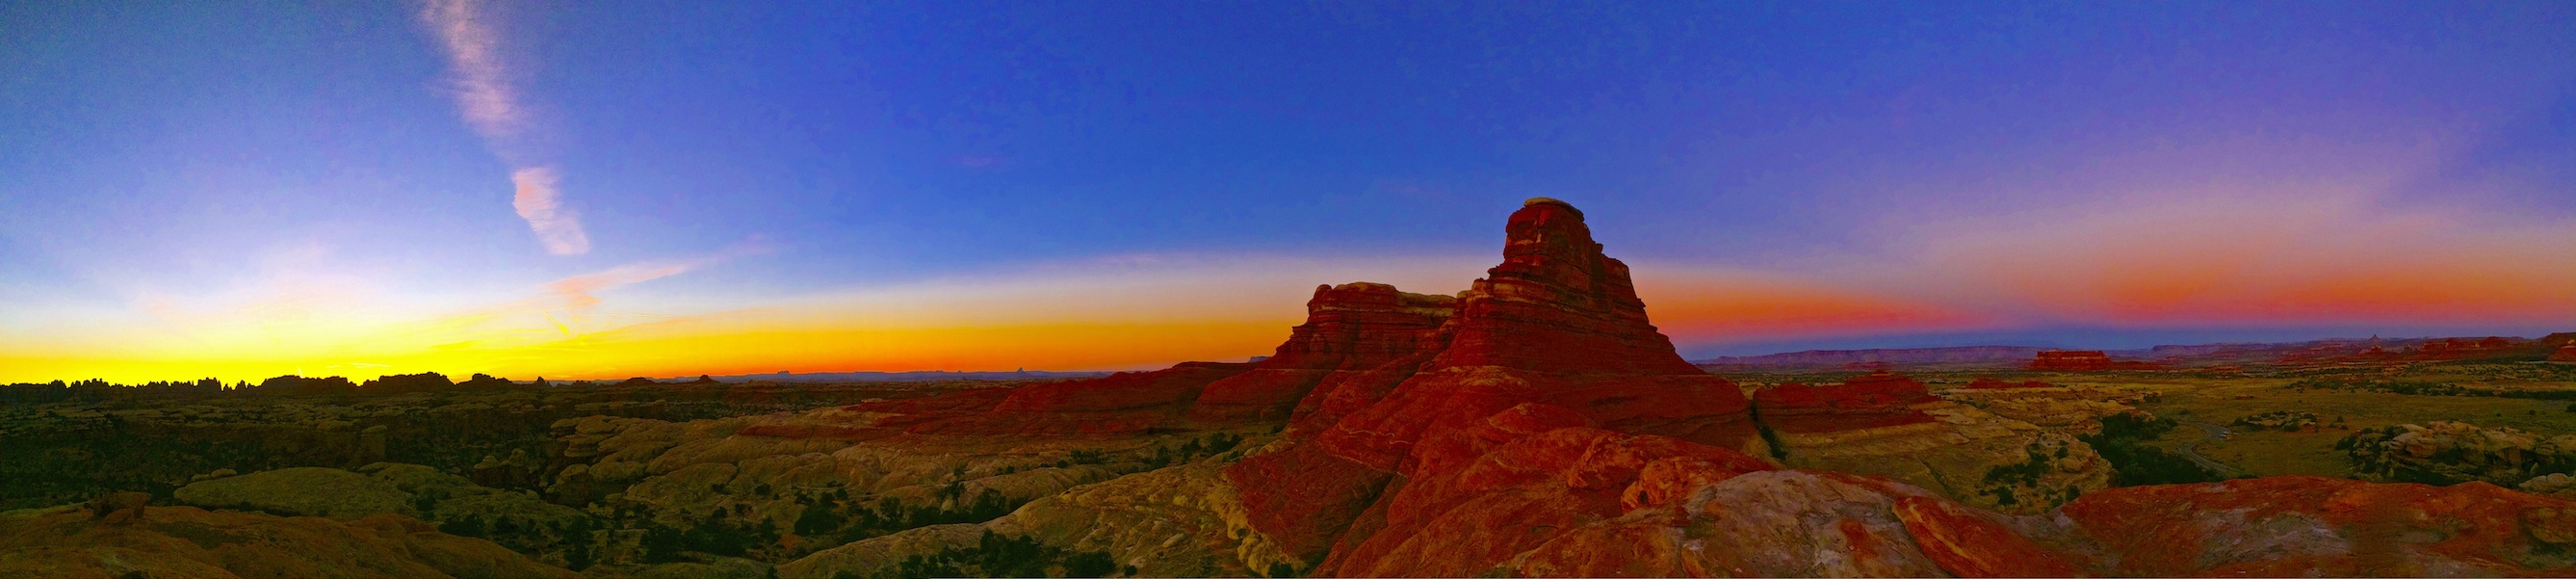 8011_canyonlands_sunset_hp